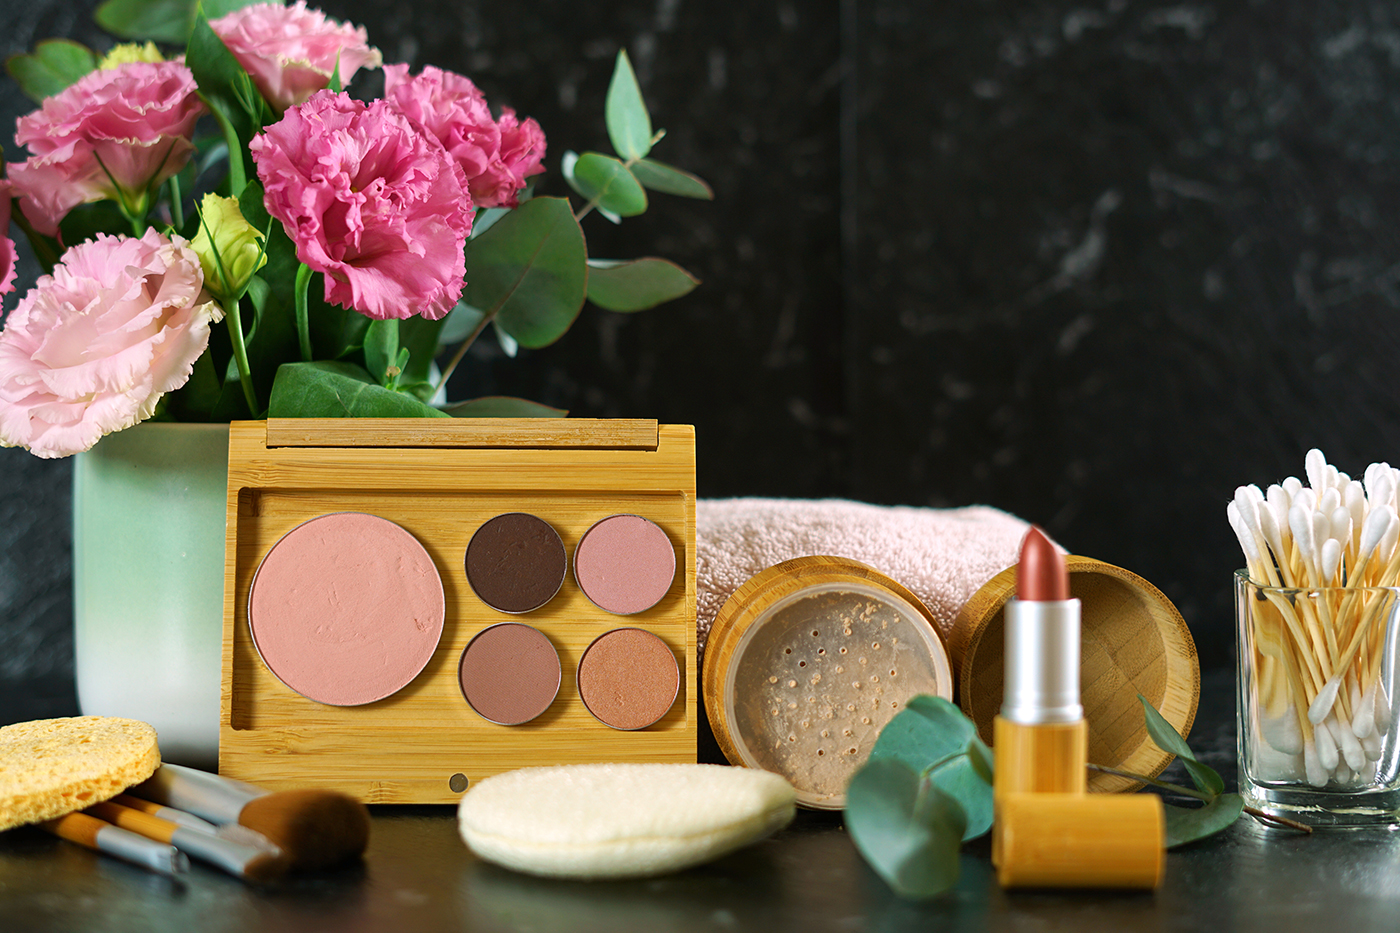 Beauty brands focus on sustainability